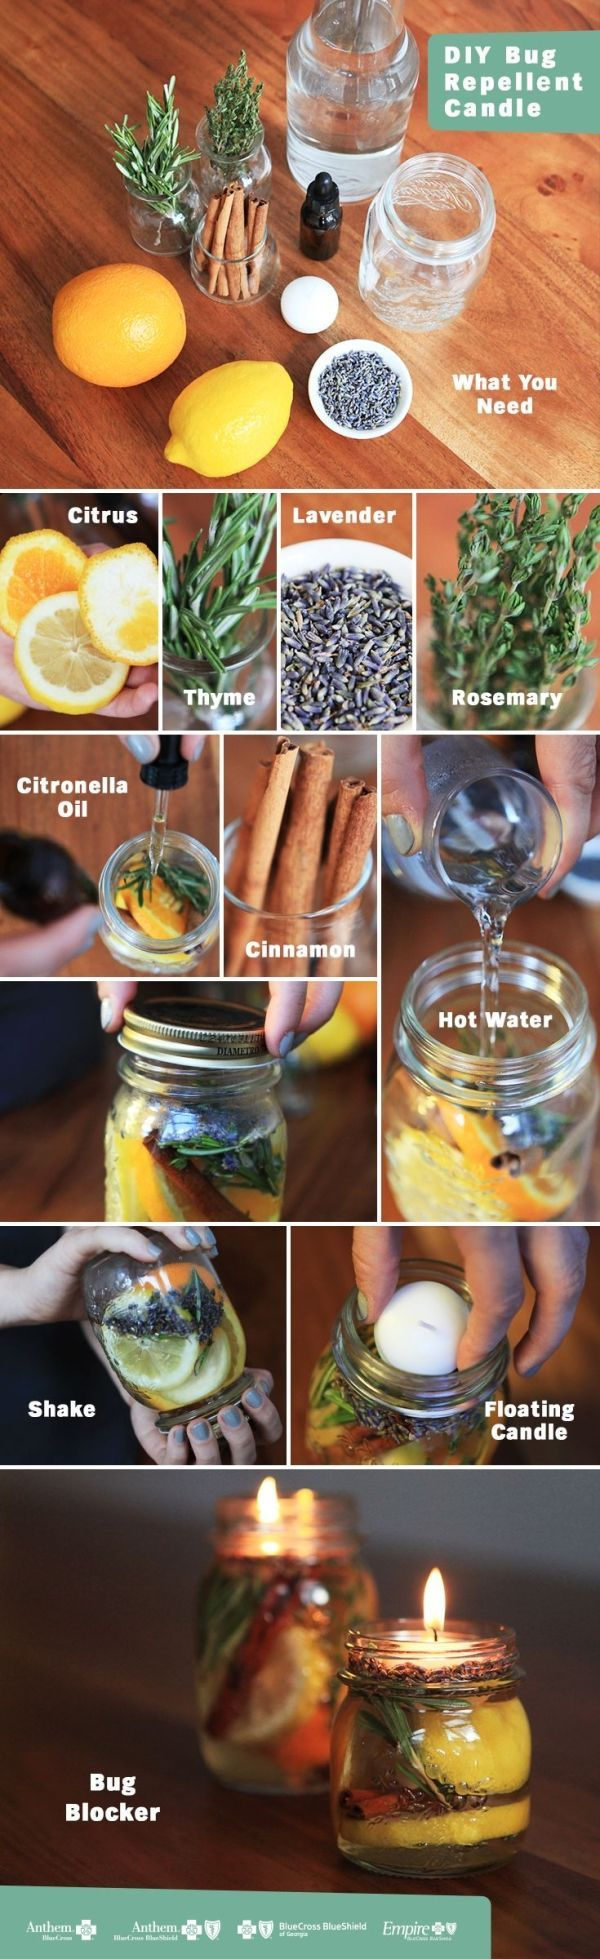 This is one sweet smelling, bug repelling candle! Make your own in a few  easy steps. Fill a mason jar with citrus rinds and herbs.